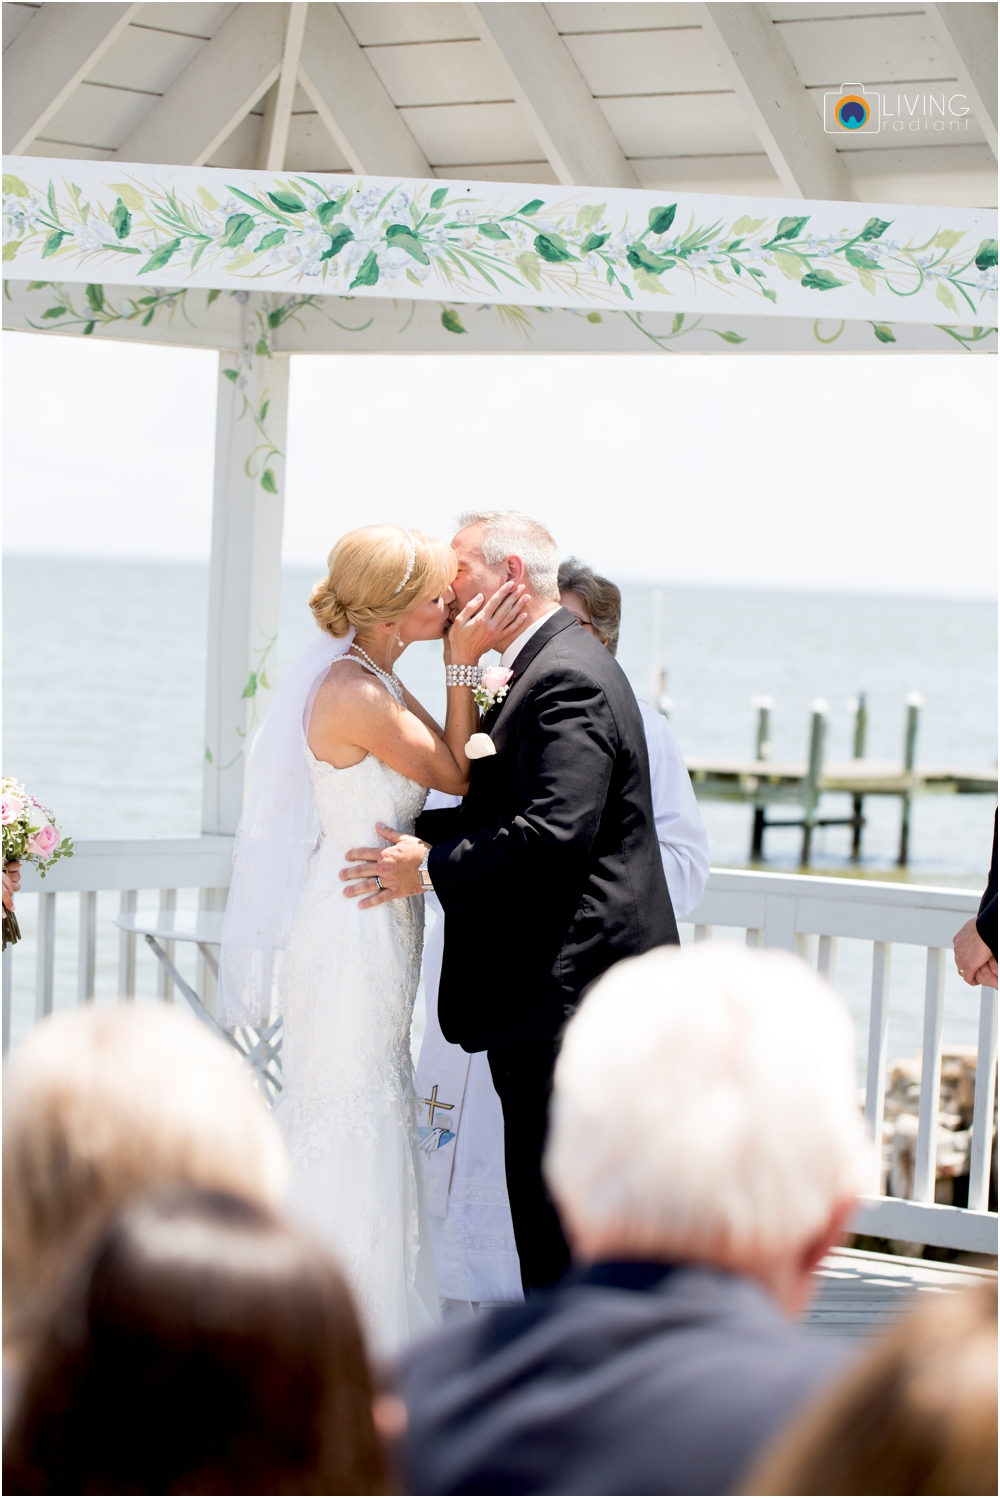 Kurtz's-Beach-Waterfront-Weddings-Outdoor-Living-Radiant-Photography-Maryland-Photos-Connie-Duane_0033.jpg